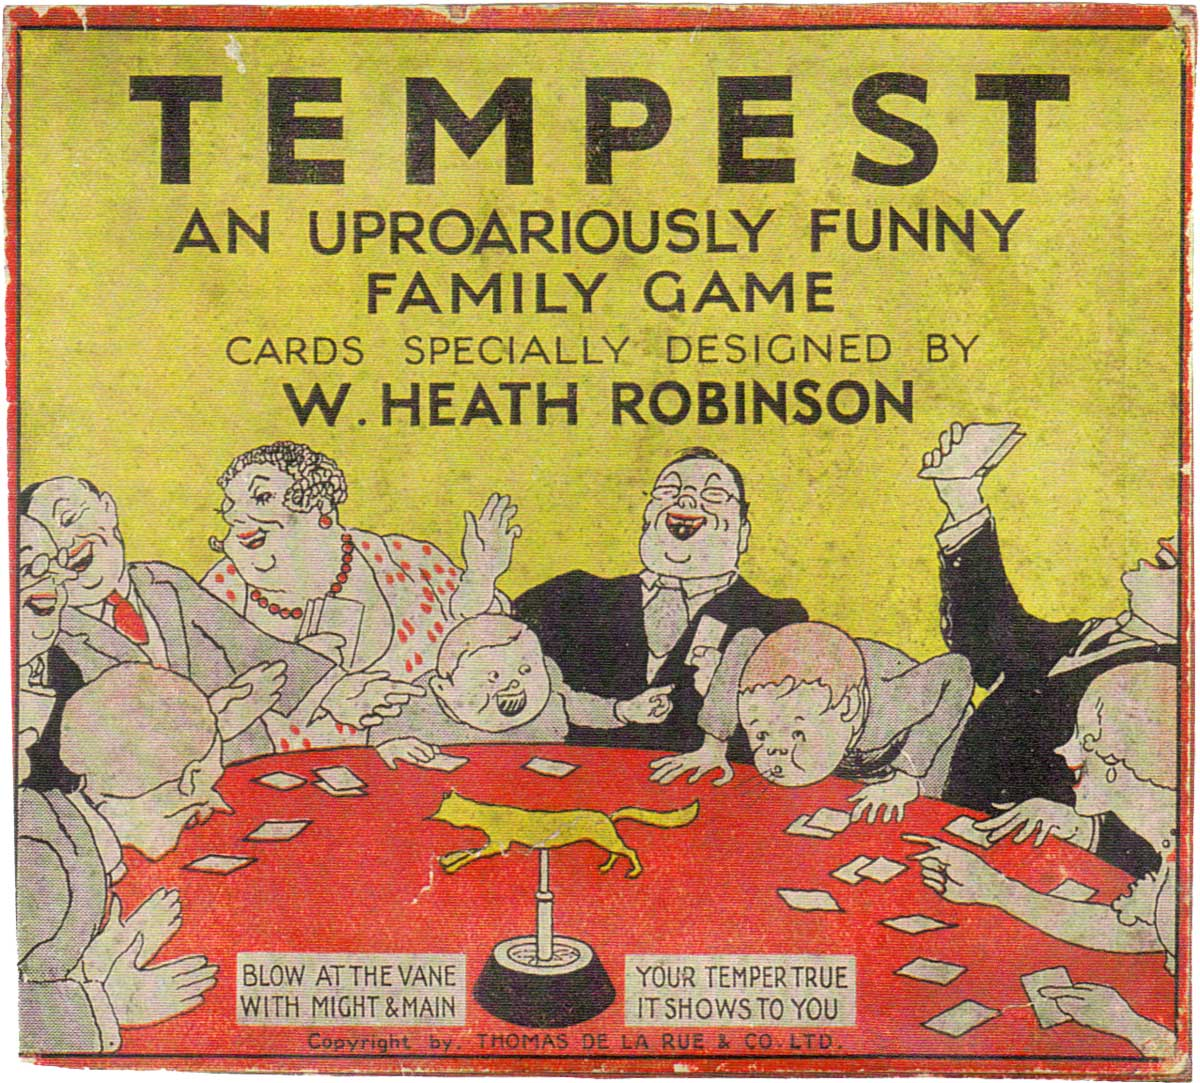 The box from Tempest published by Thomas de la Rue & Co. Ltd, c.1920s